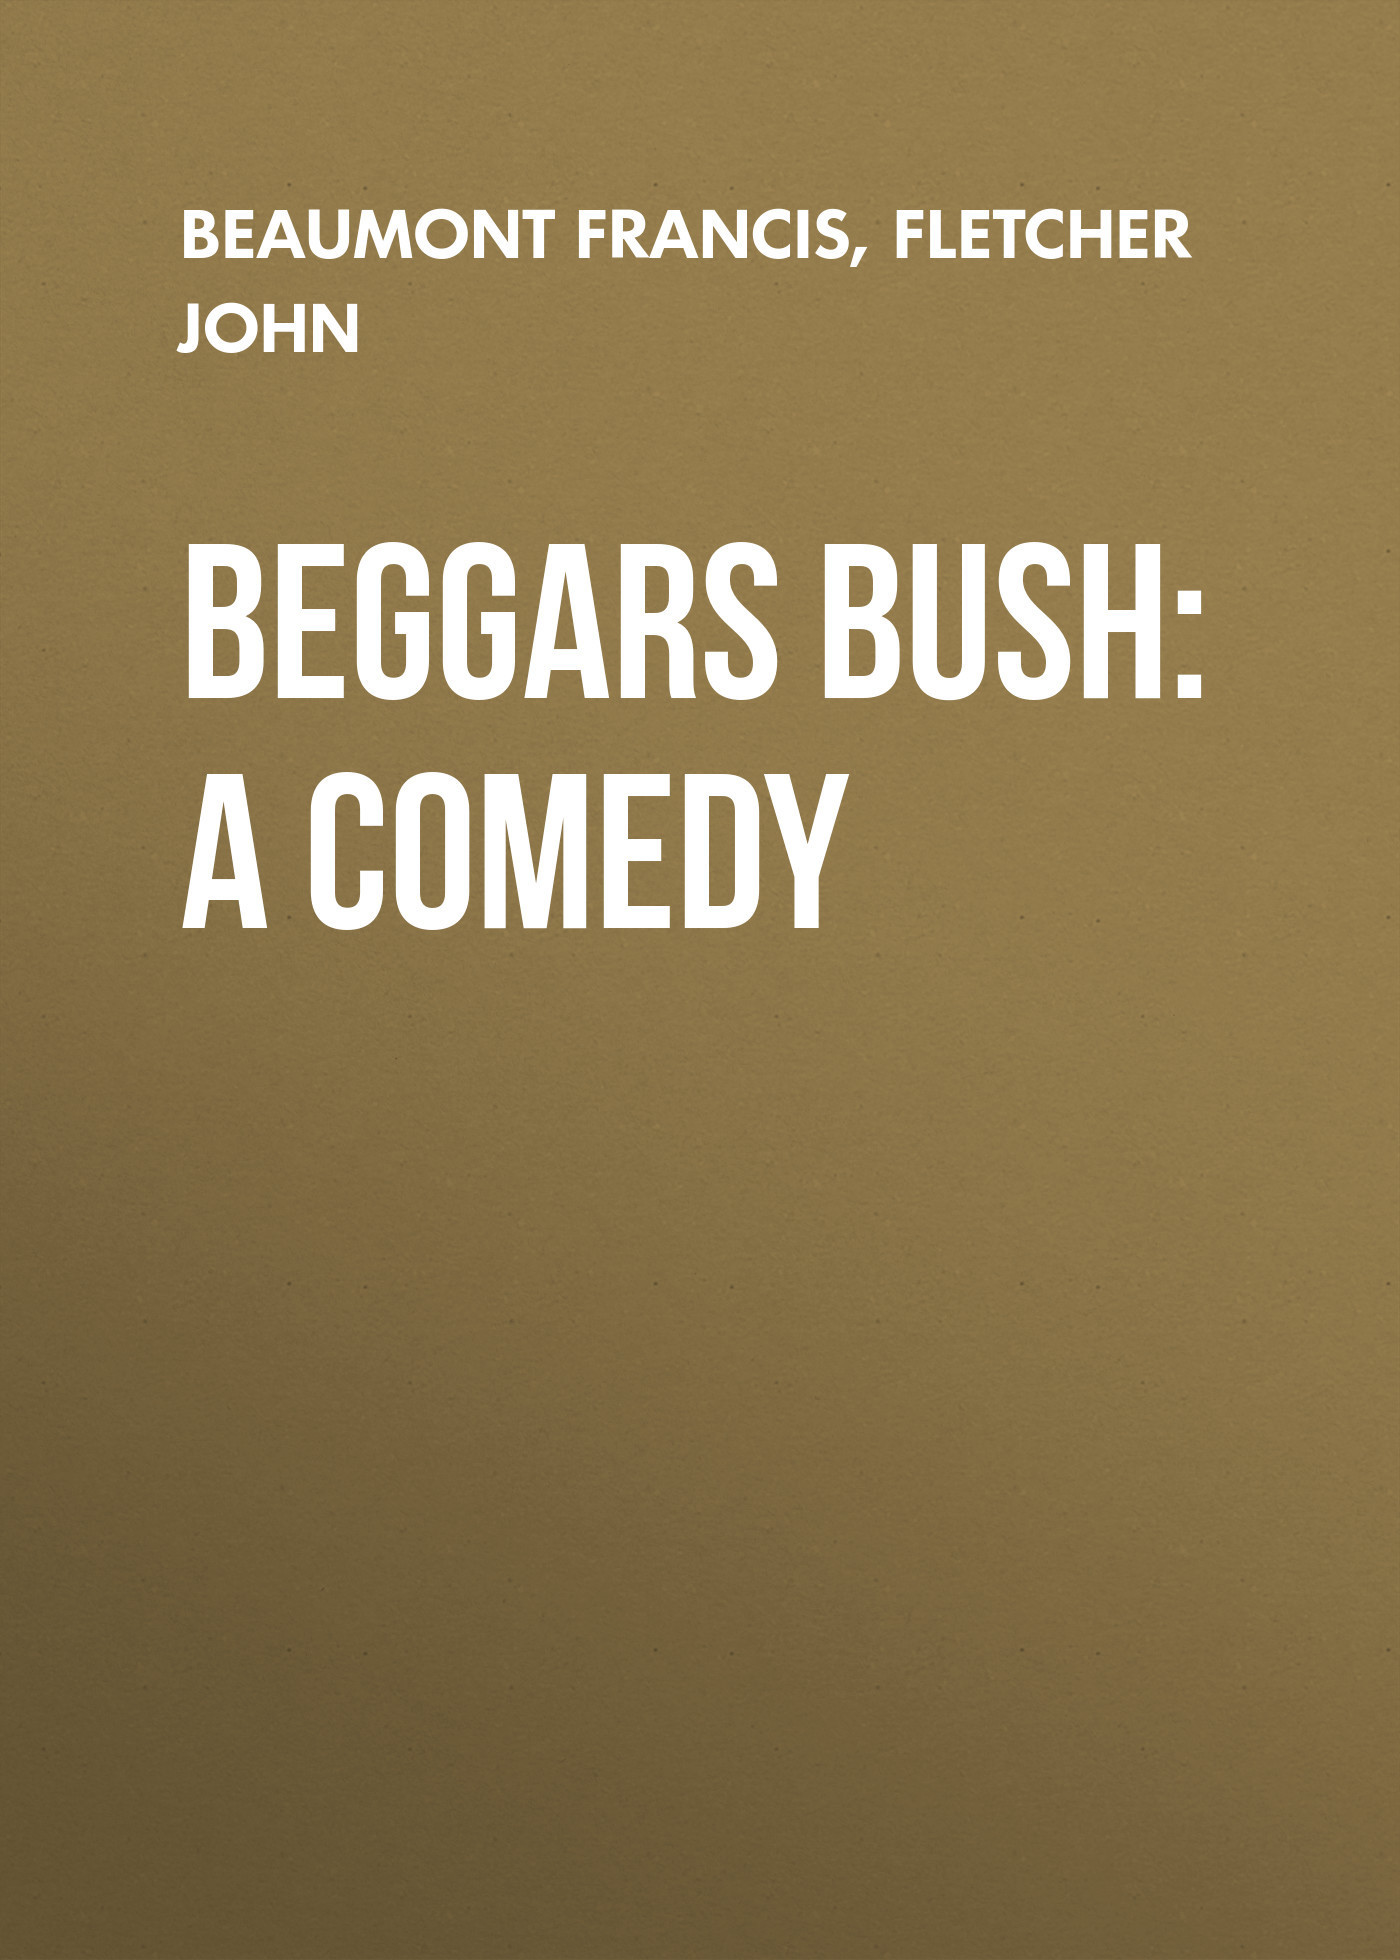 Beaumont Francis Beggars Bush: A Comedy gayley charles mills francis beaumont dramatist